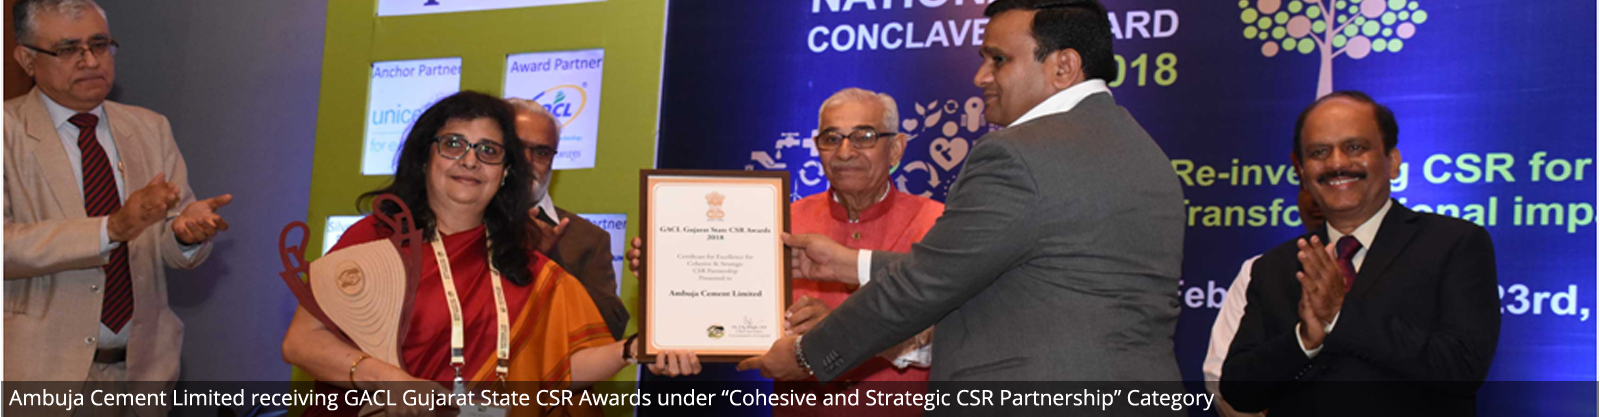 "Ambuja Cement Limited receiving GACL Gujarat State CSR Awards under ""Cohesive and Strategic CSR Partnership"" Category"